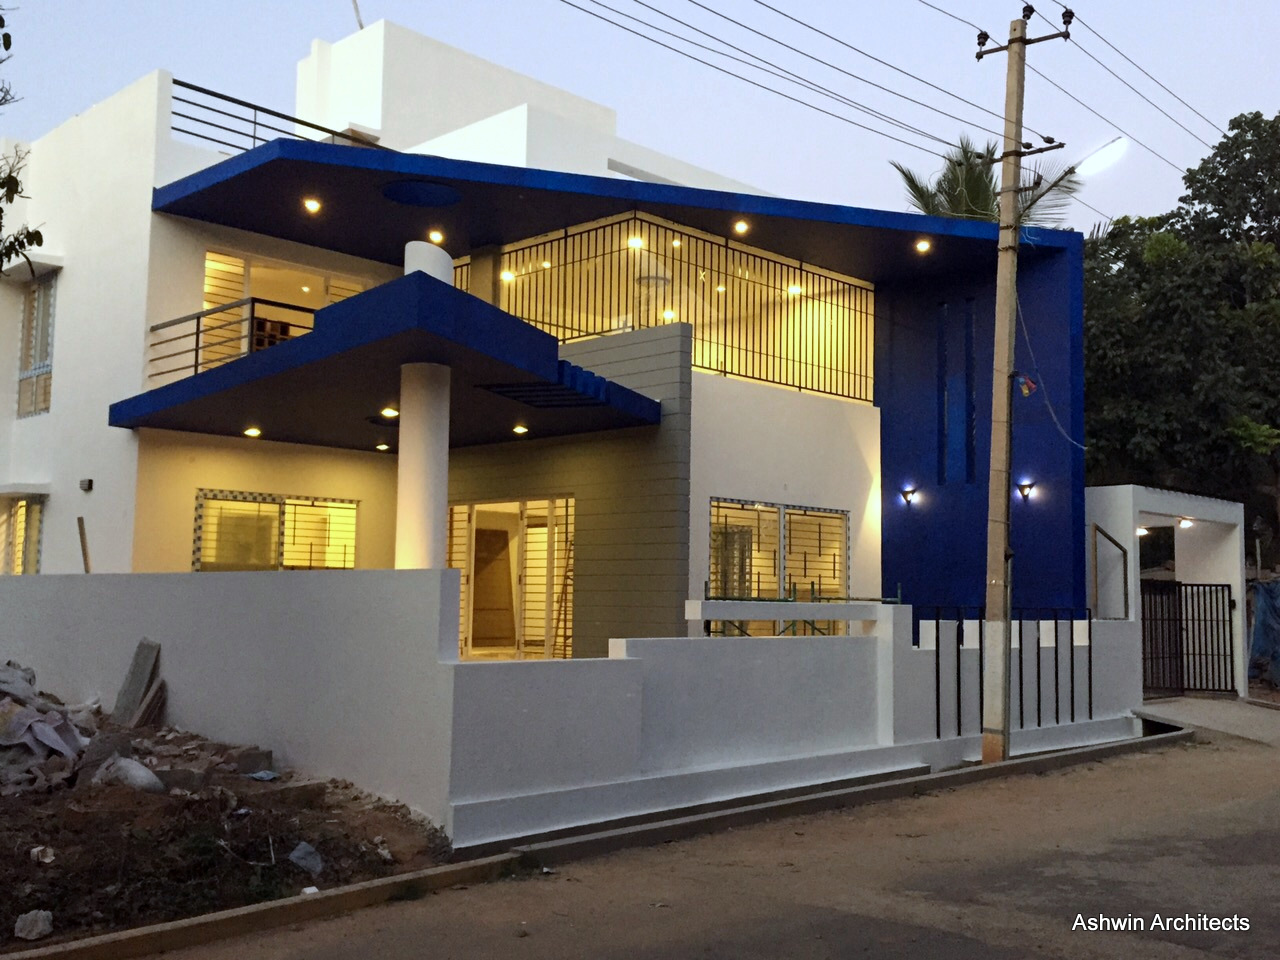 Mala's 50 X 80 Ft Bungalow In India by Ashwin Architects ...